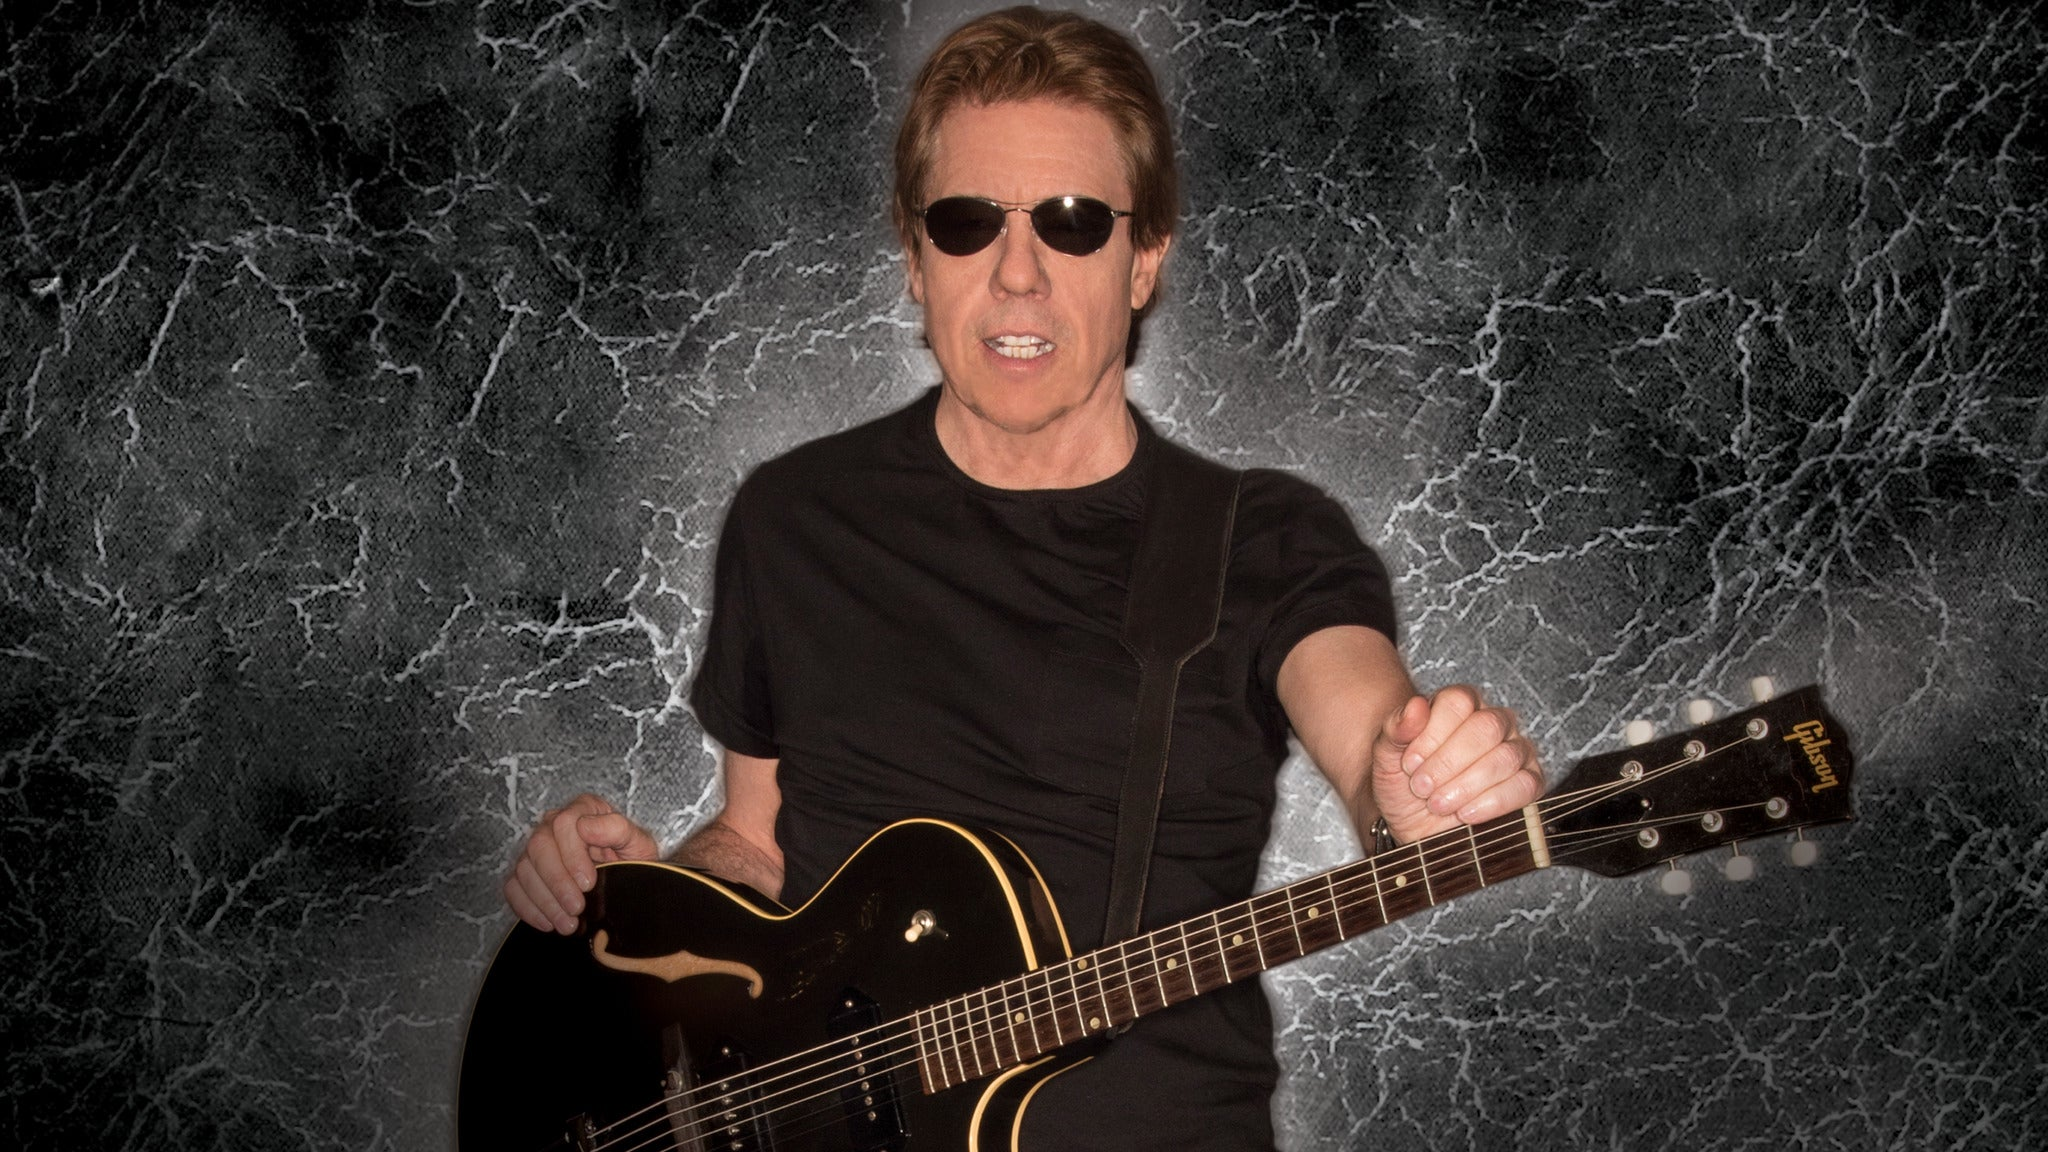 George Thorogood & The Destroyers at 20 Monroe Live